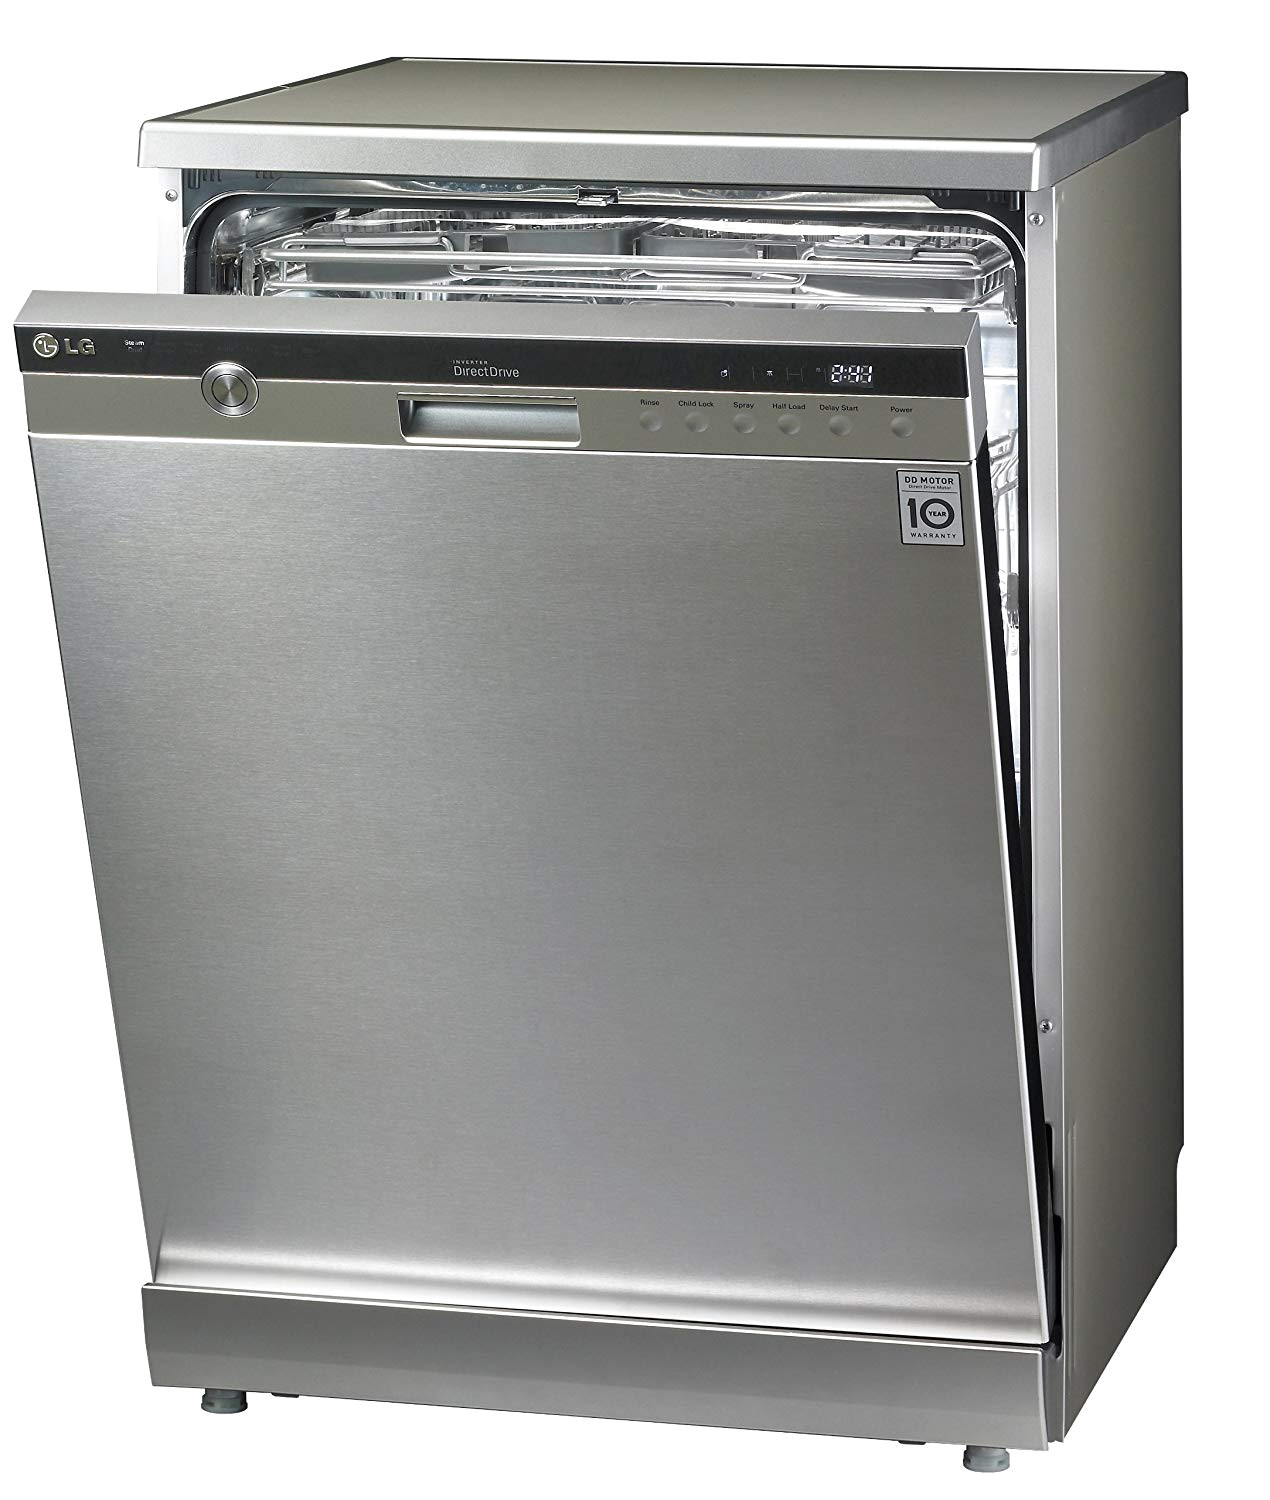 lg d1454tf 14 place setting steam direct drive dishwasher stainless steel amazon co uk large appliances